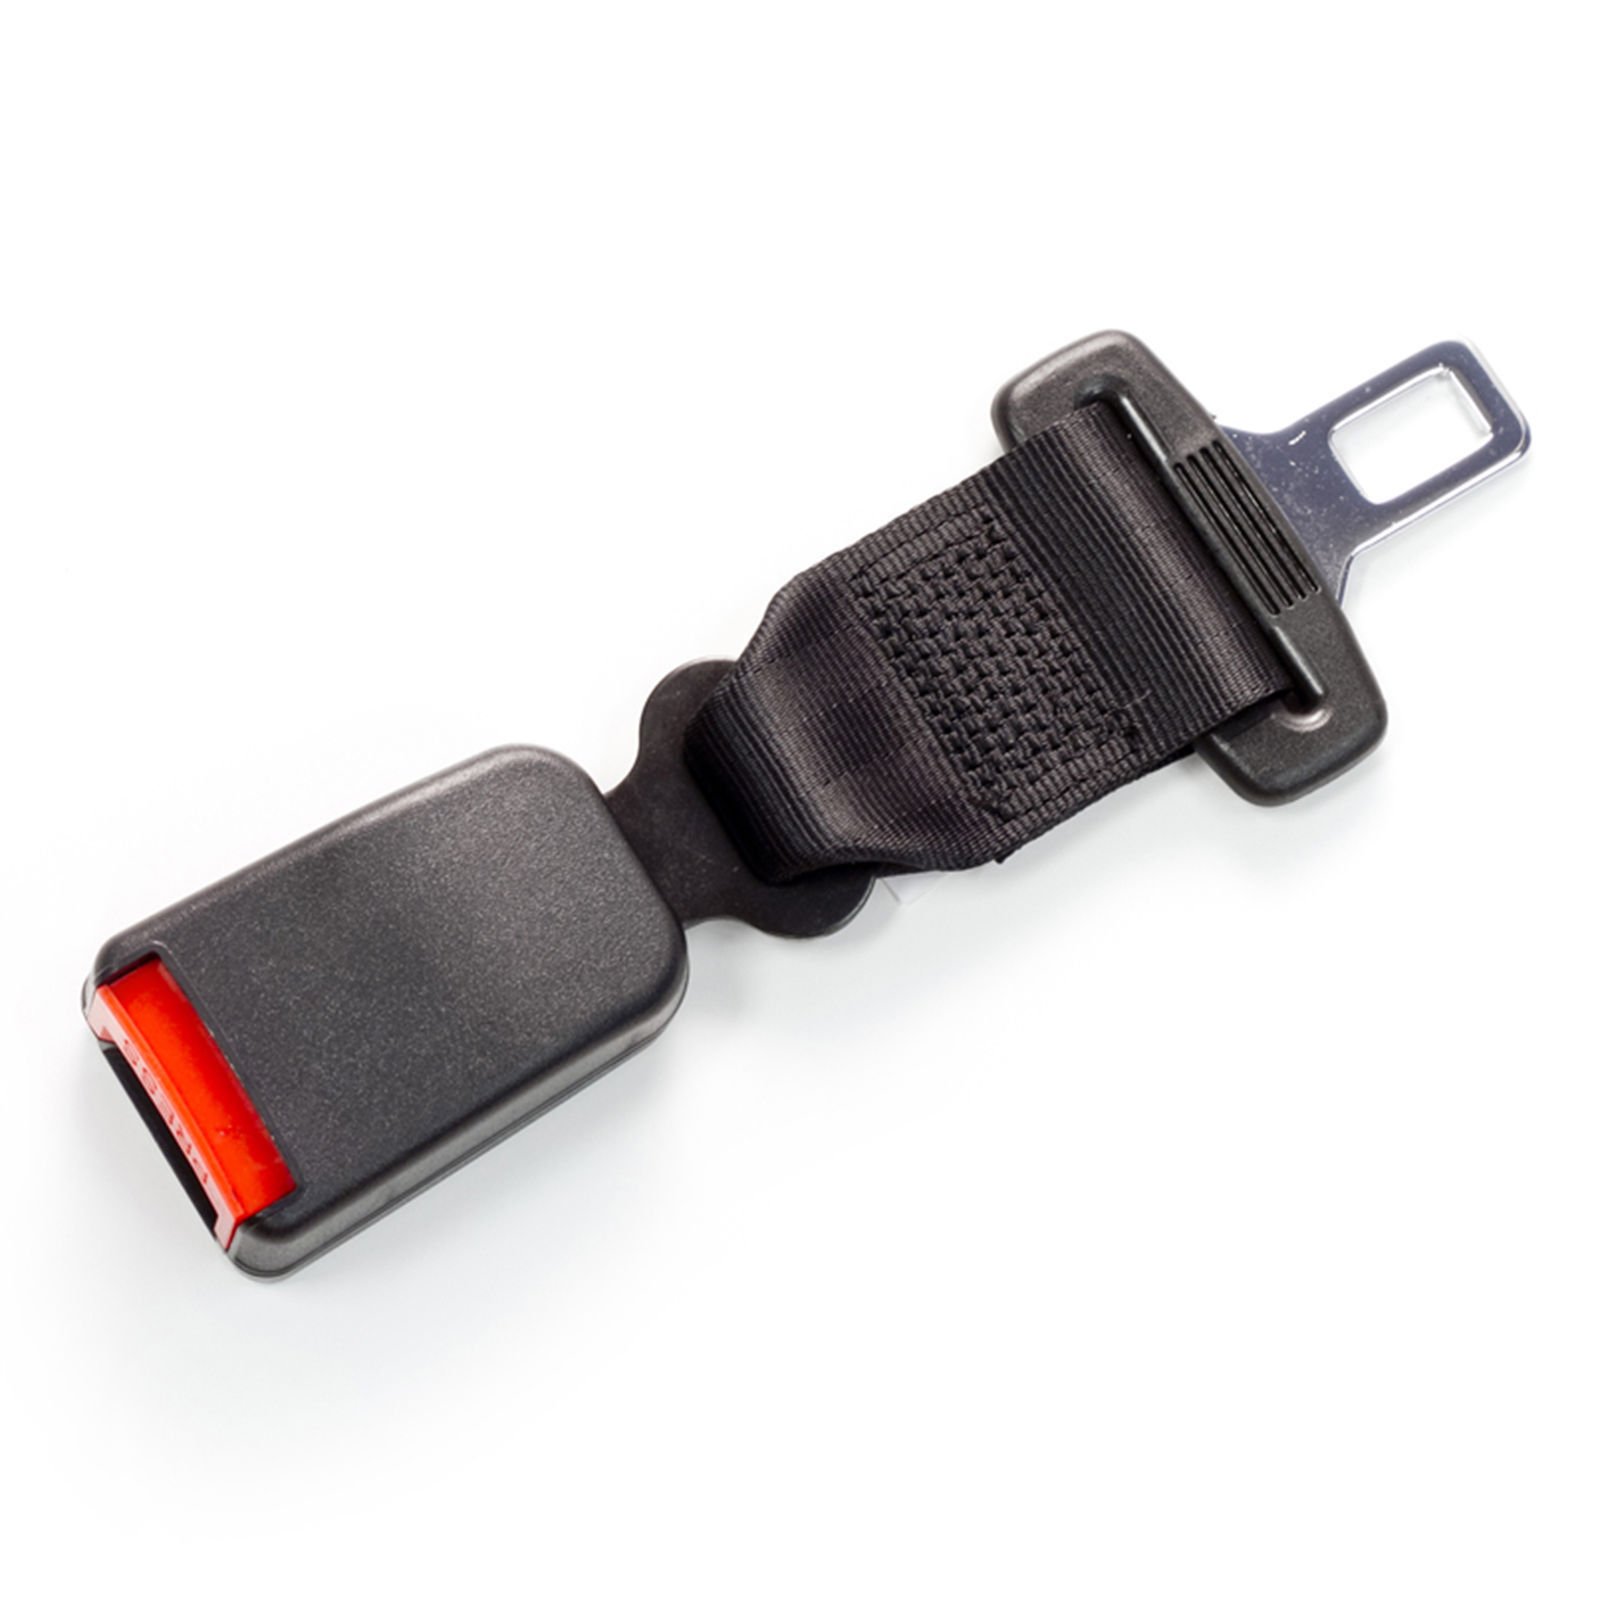 Primary image for Seat Belt Extension for 2013 Volkswagen Jetta 2nd Row Middle Seats - E4 Safety C